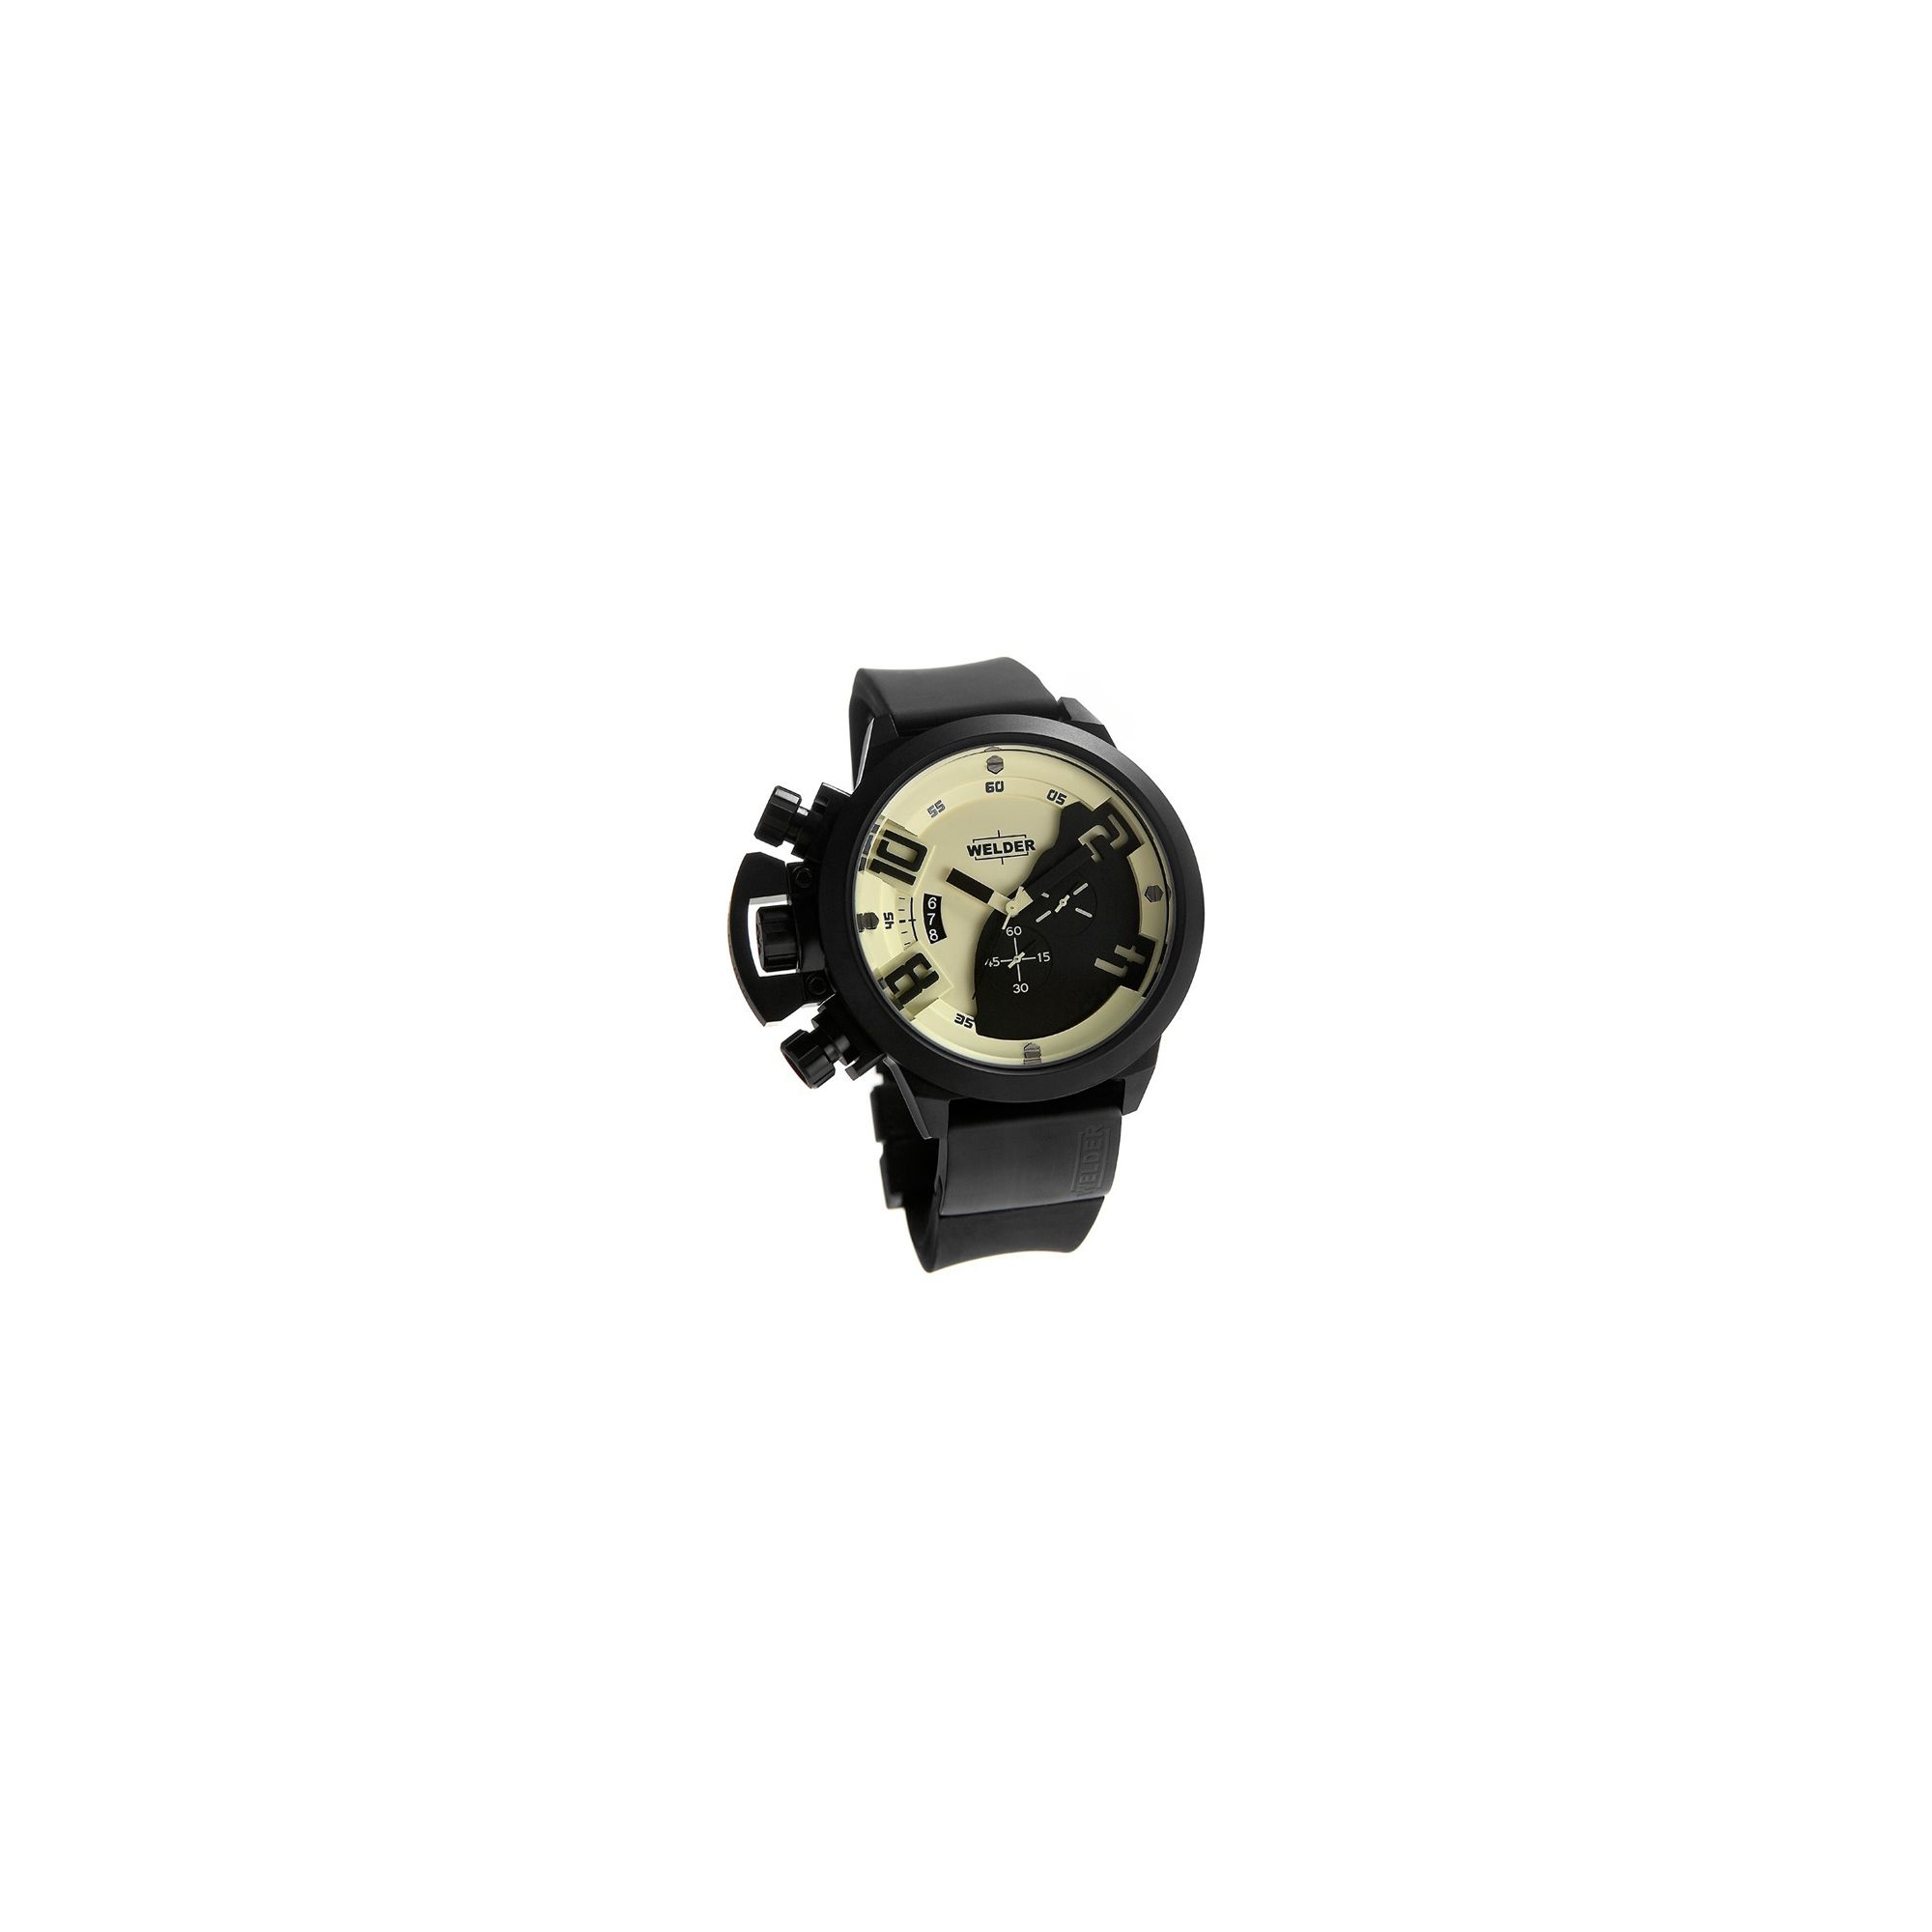 Welder Gents Cream Dial Black Rubber Strap Watch K24-3305 at Tesco Direct